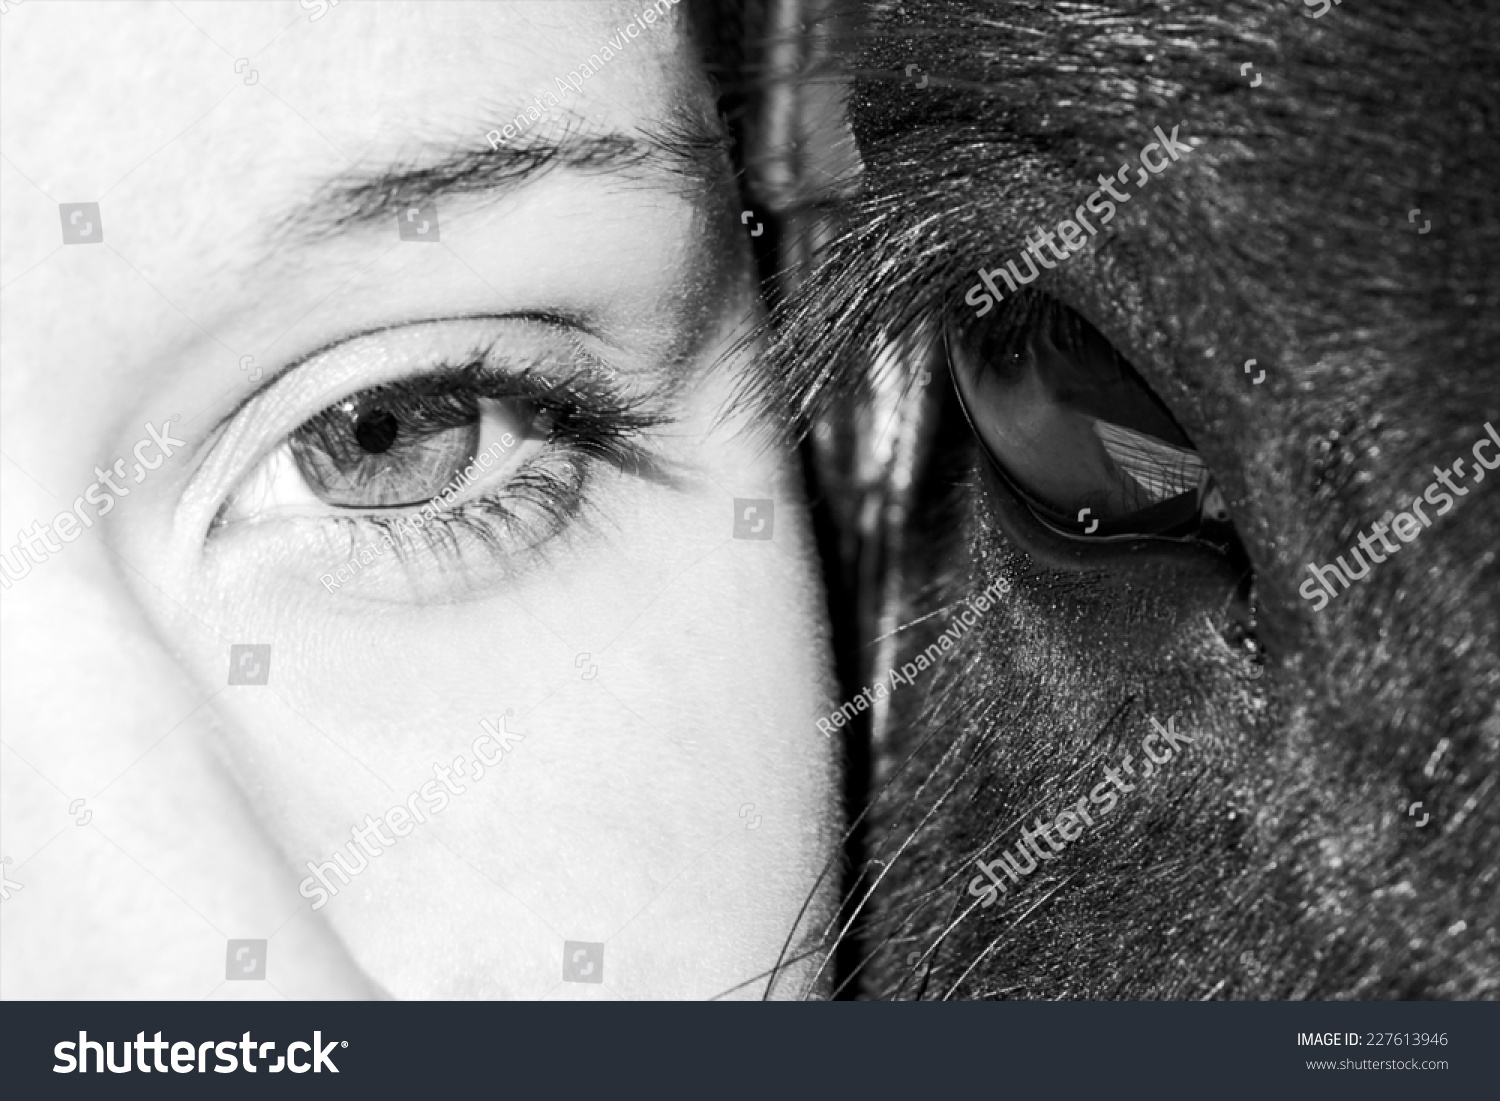 Eyes of girl and horse in black and white photo artistic photo of horse and